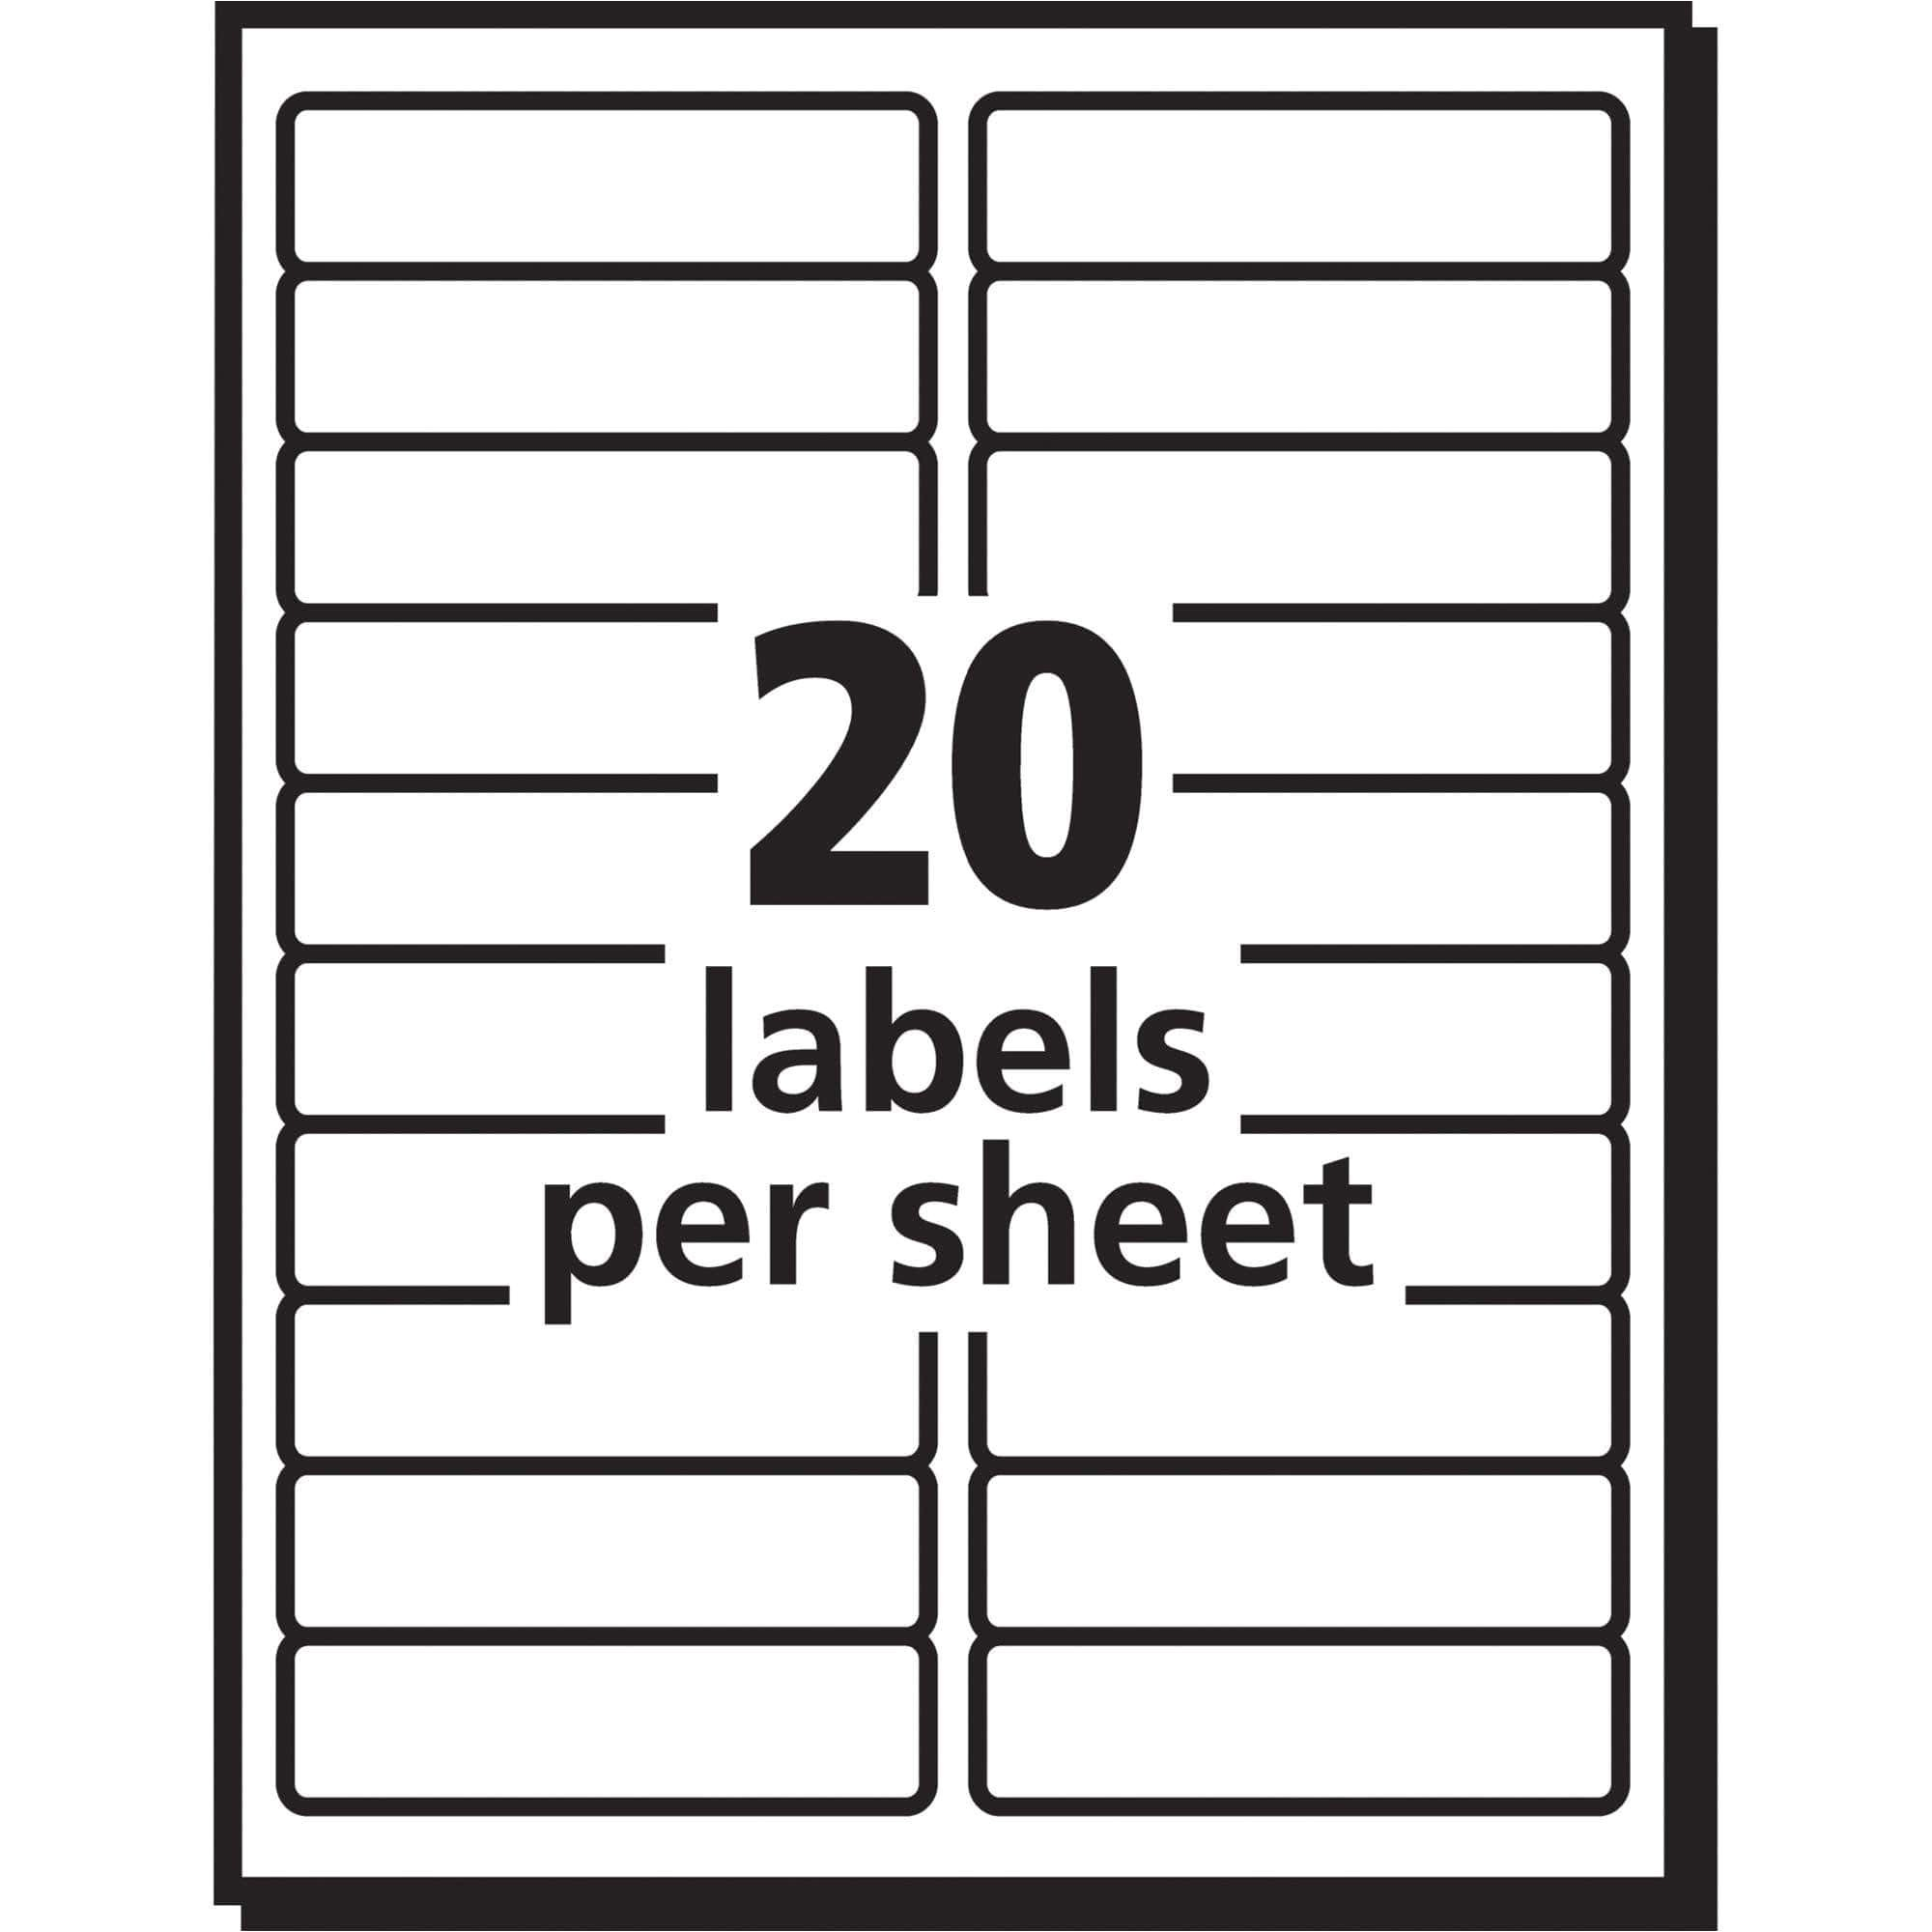 Download Free Avery Templates Labels by the Sheet Templates and Avery Address Labels